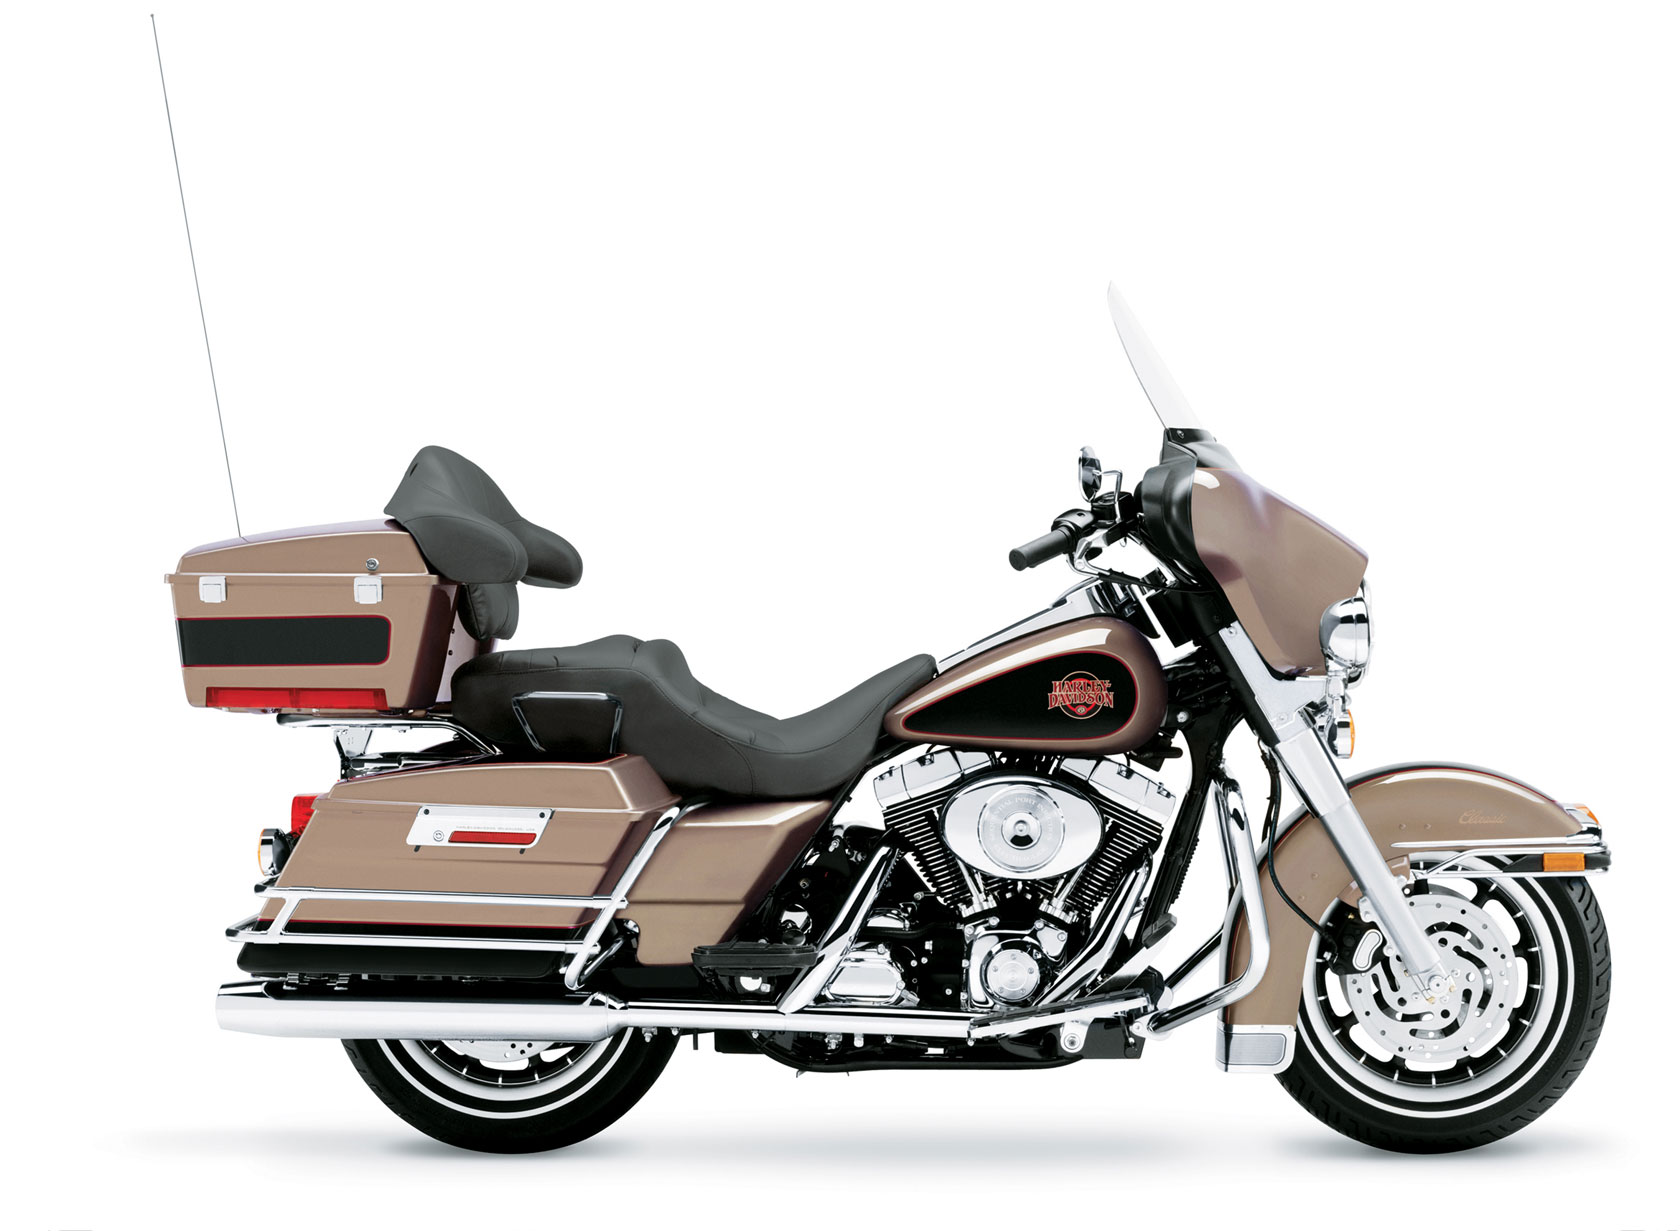 Harley-Davidson FLHTC Electra Glide Classic 2011 #4